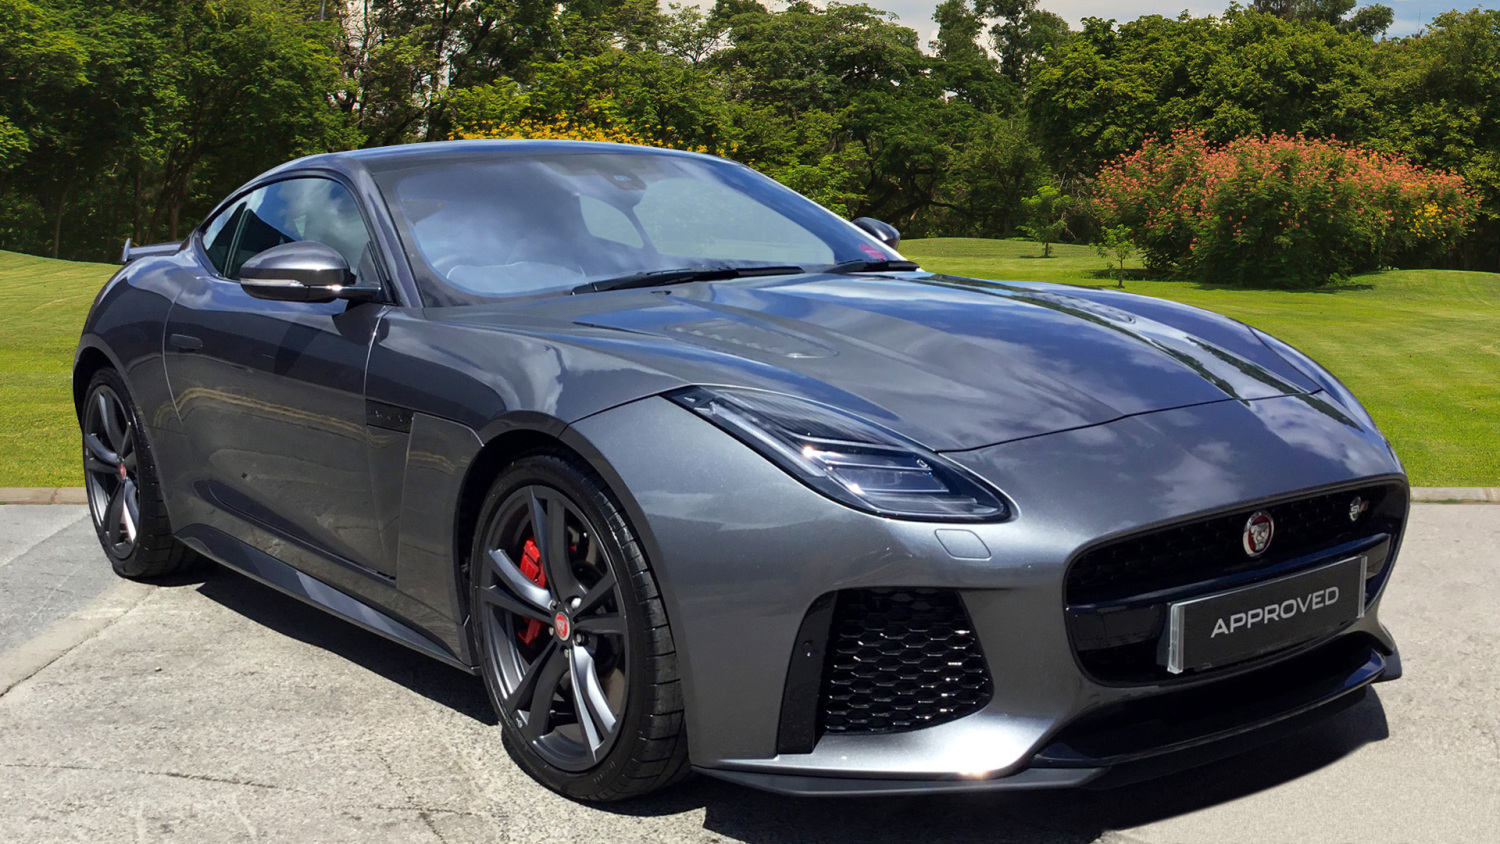 used jaguar f type 5 0 supercharged v8 svr 2dr auto awd petrol coupe for sale farnell land rover. Black Bedroom Furniture Sets. Home Design Ideas